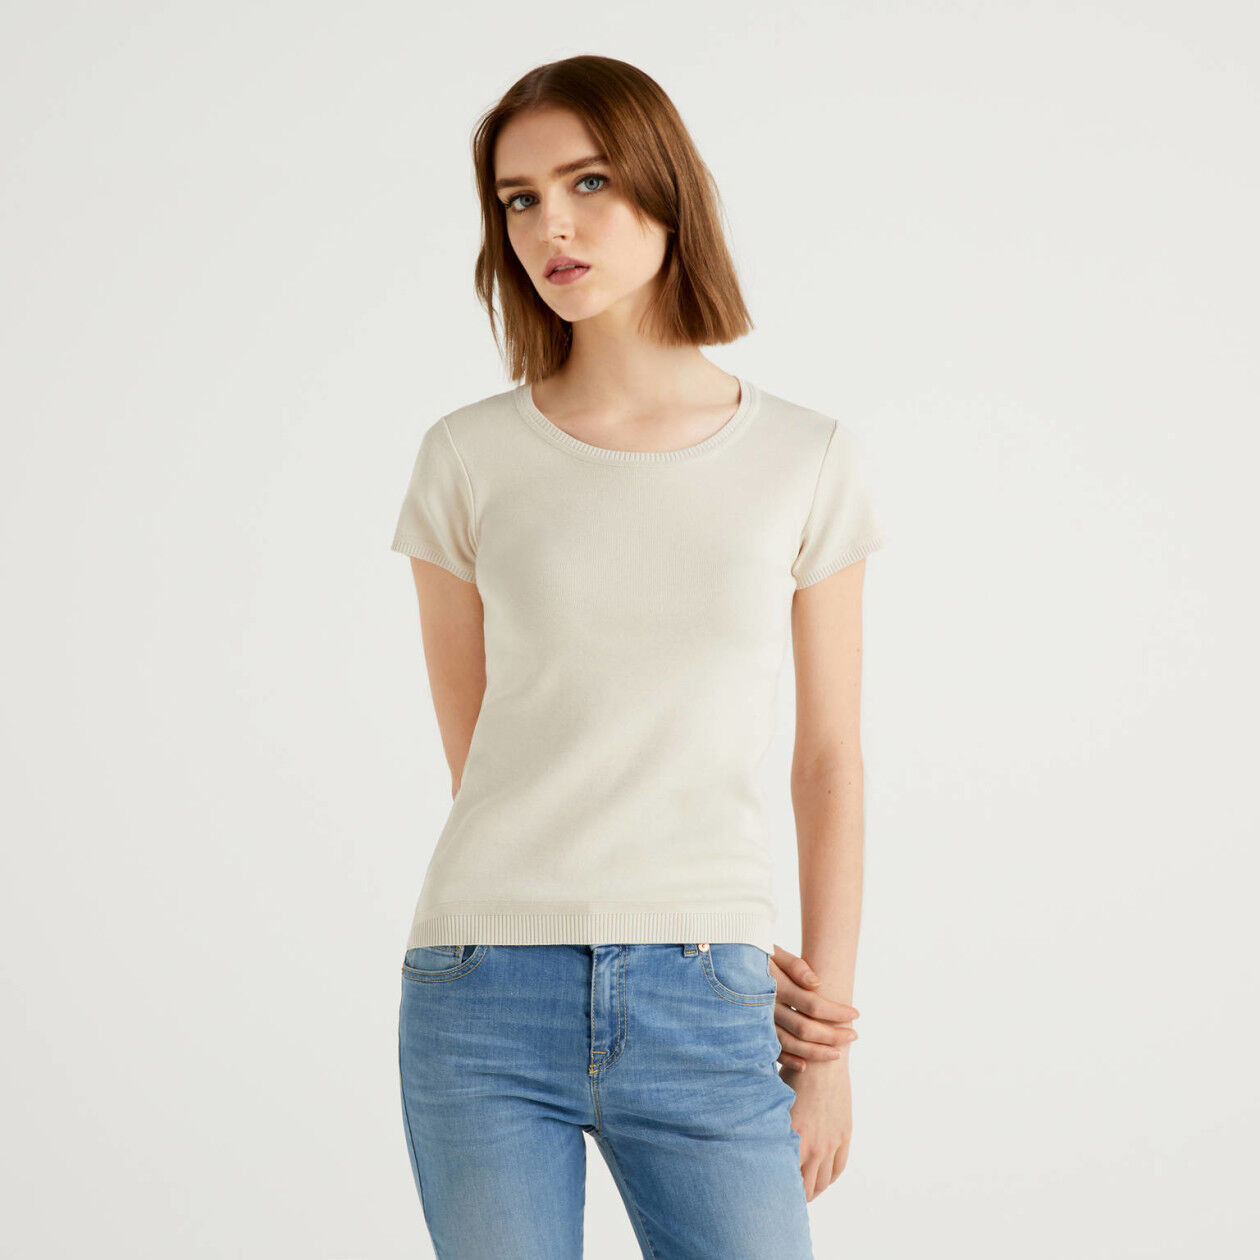 Short sleeve cotton sweater